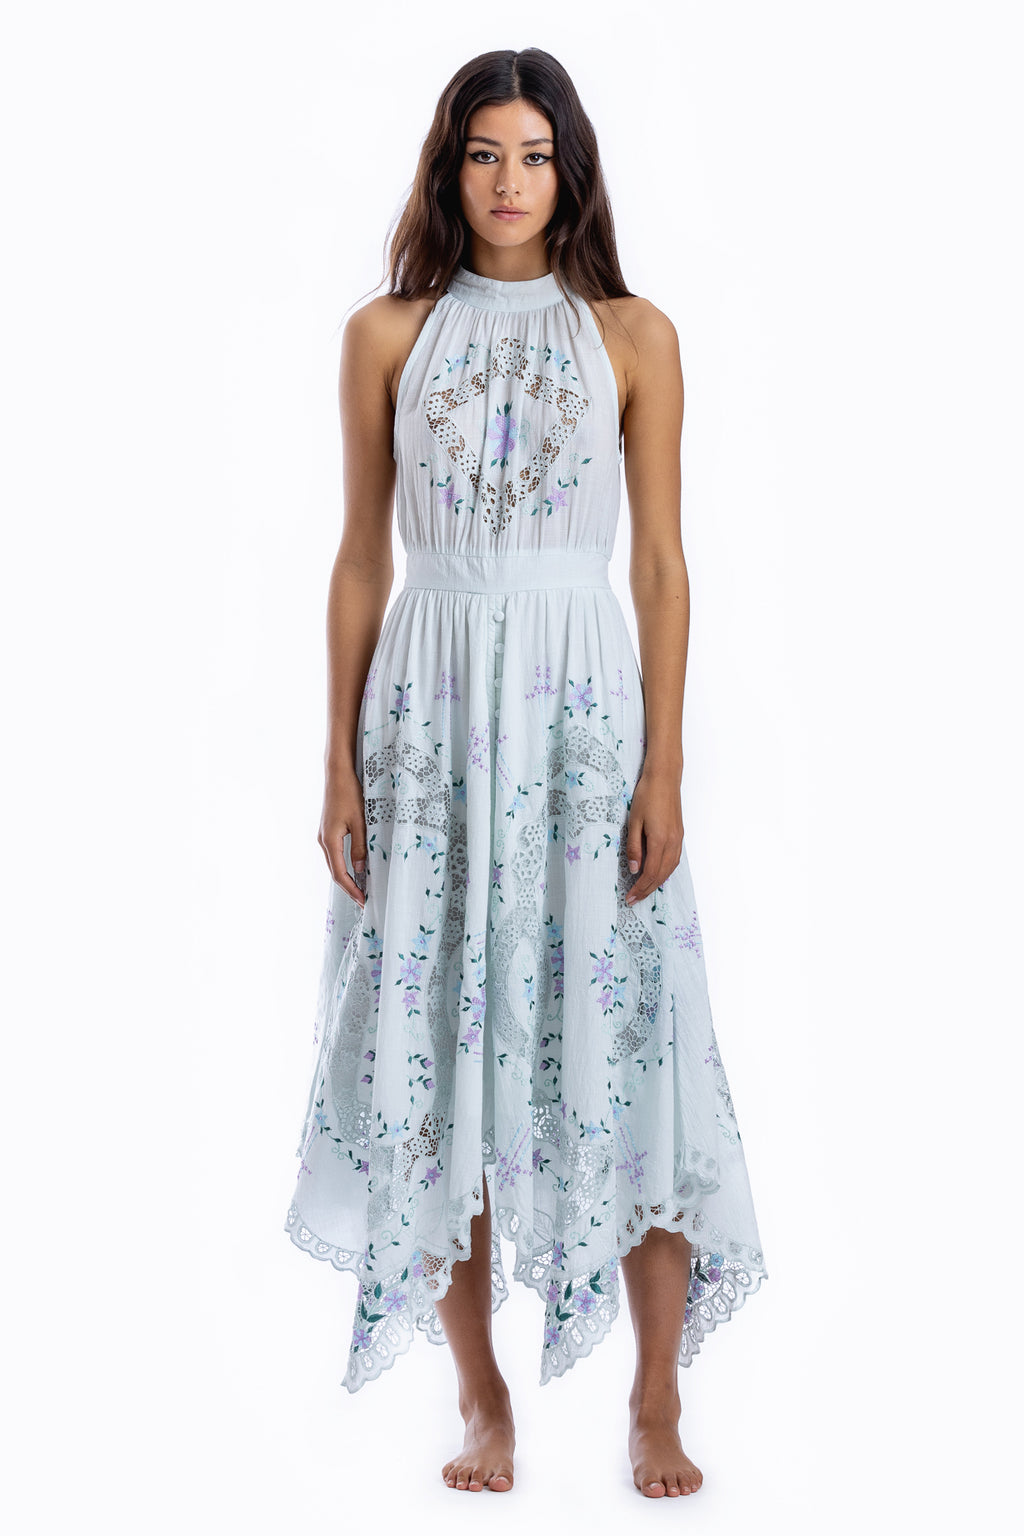 Once Upon A Song - Halter embroidered maxi dress